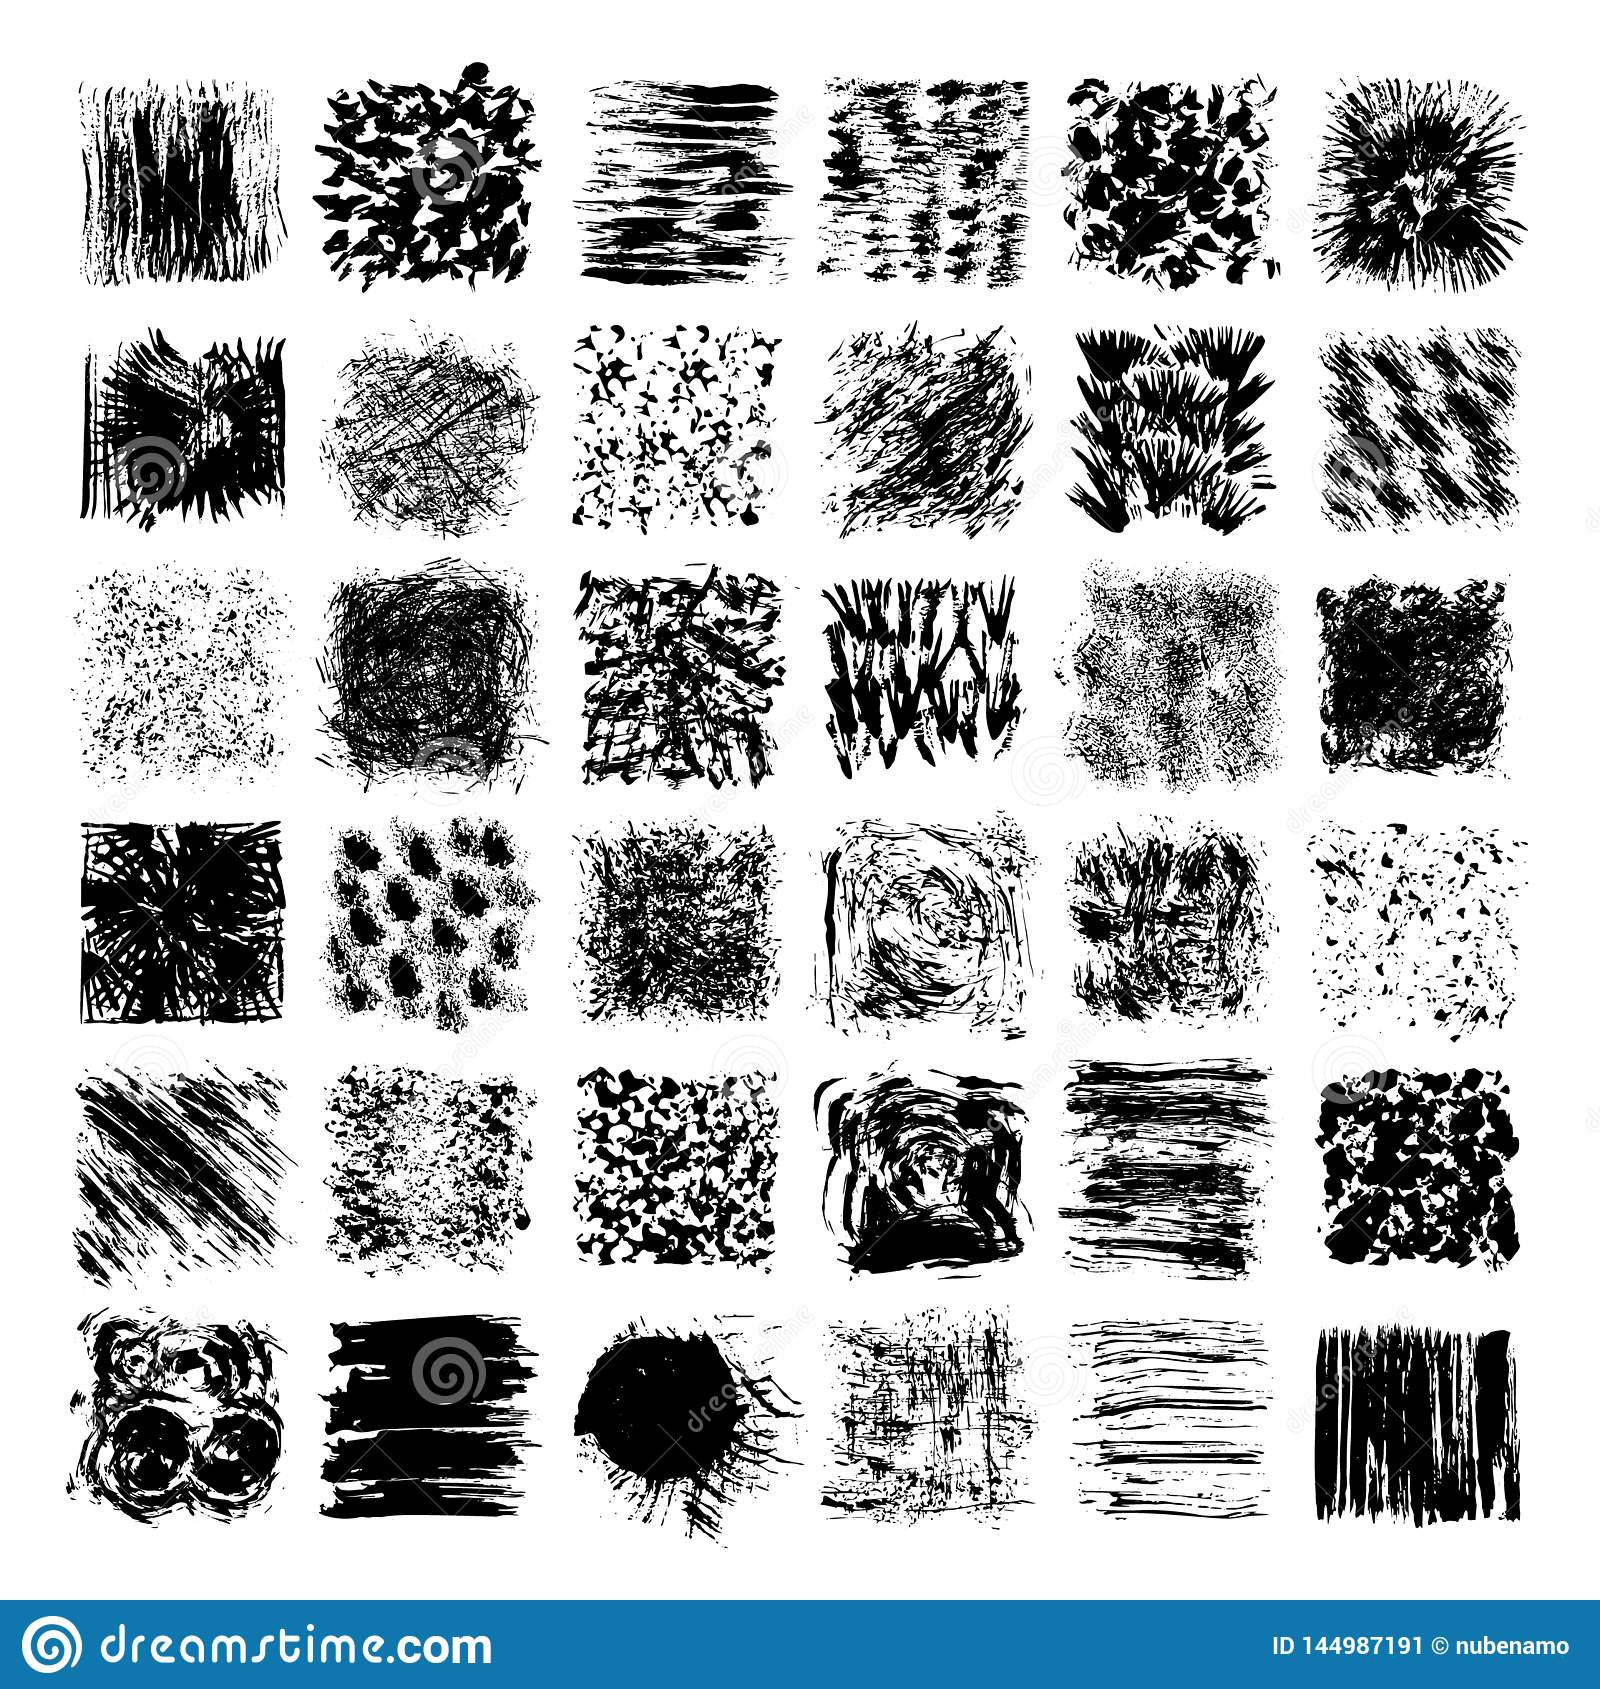 Grungy Hand Drawn Textures, Brush Strokes. Abstract Vector Clipart.